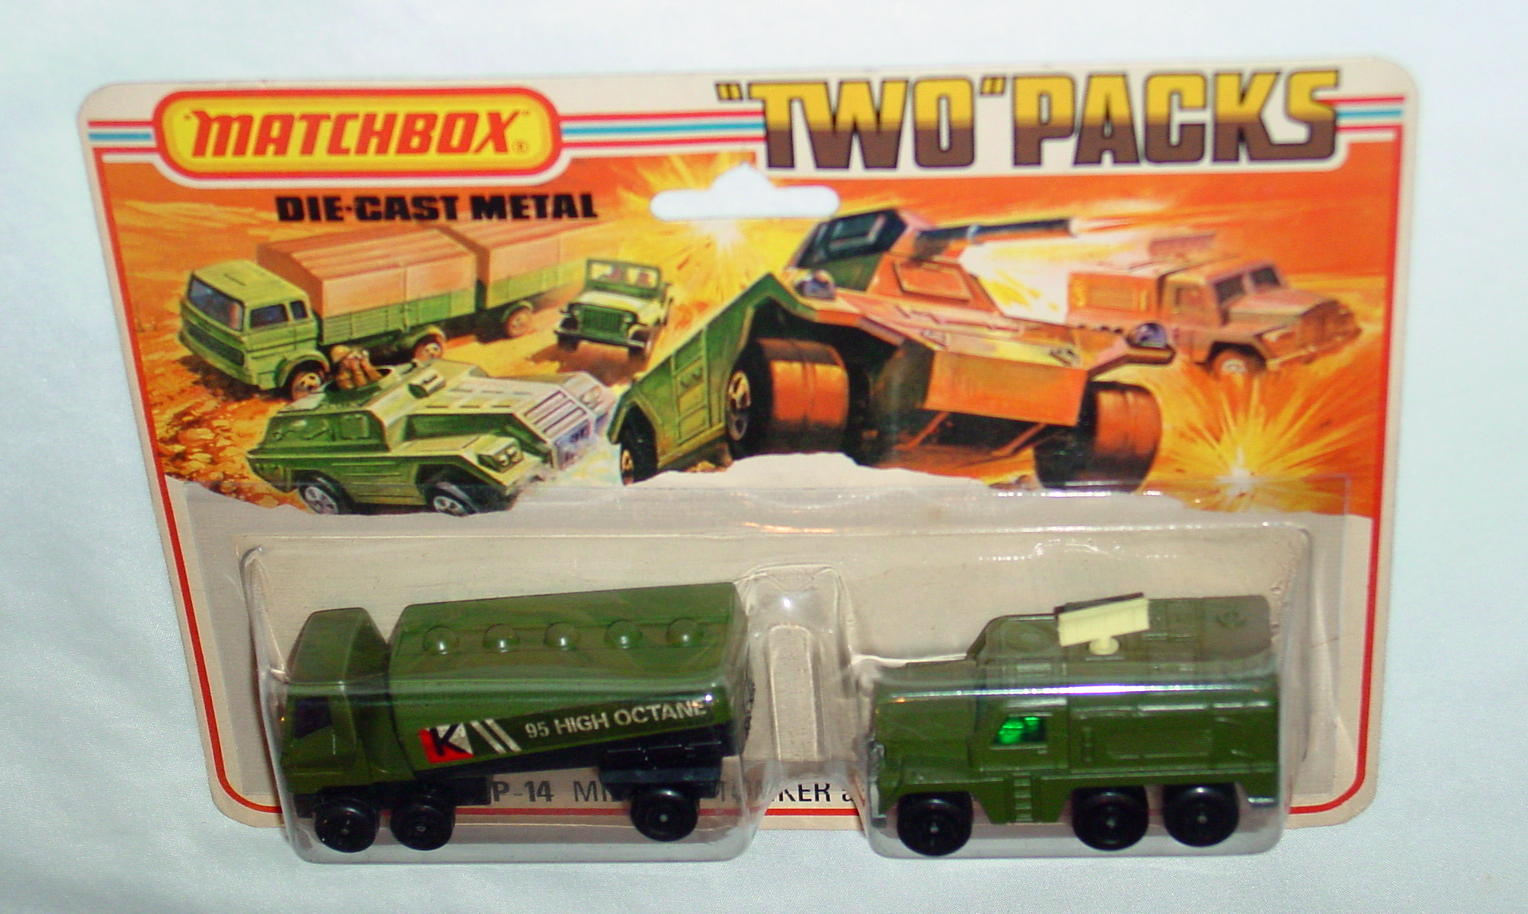 Twin Pack 14 A 3 - olive 63B4 Tanker olive 16A4 Badger C9.5 Tall card